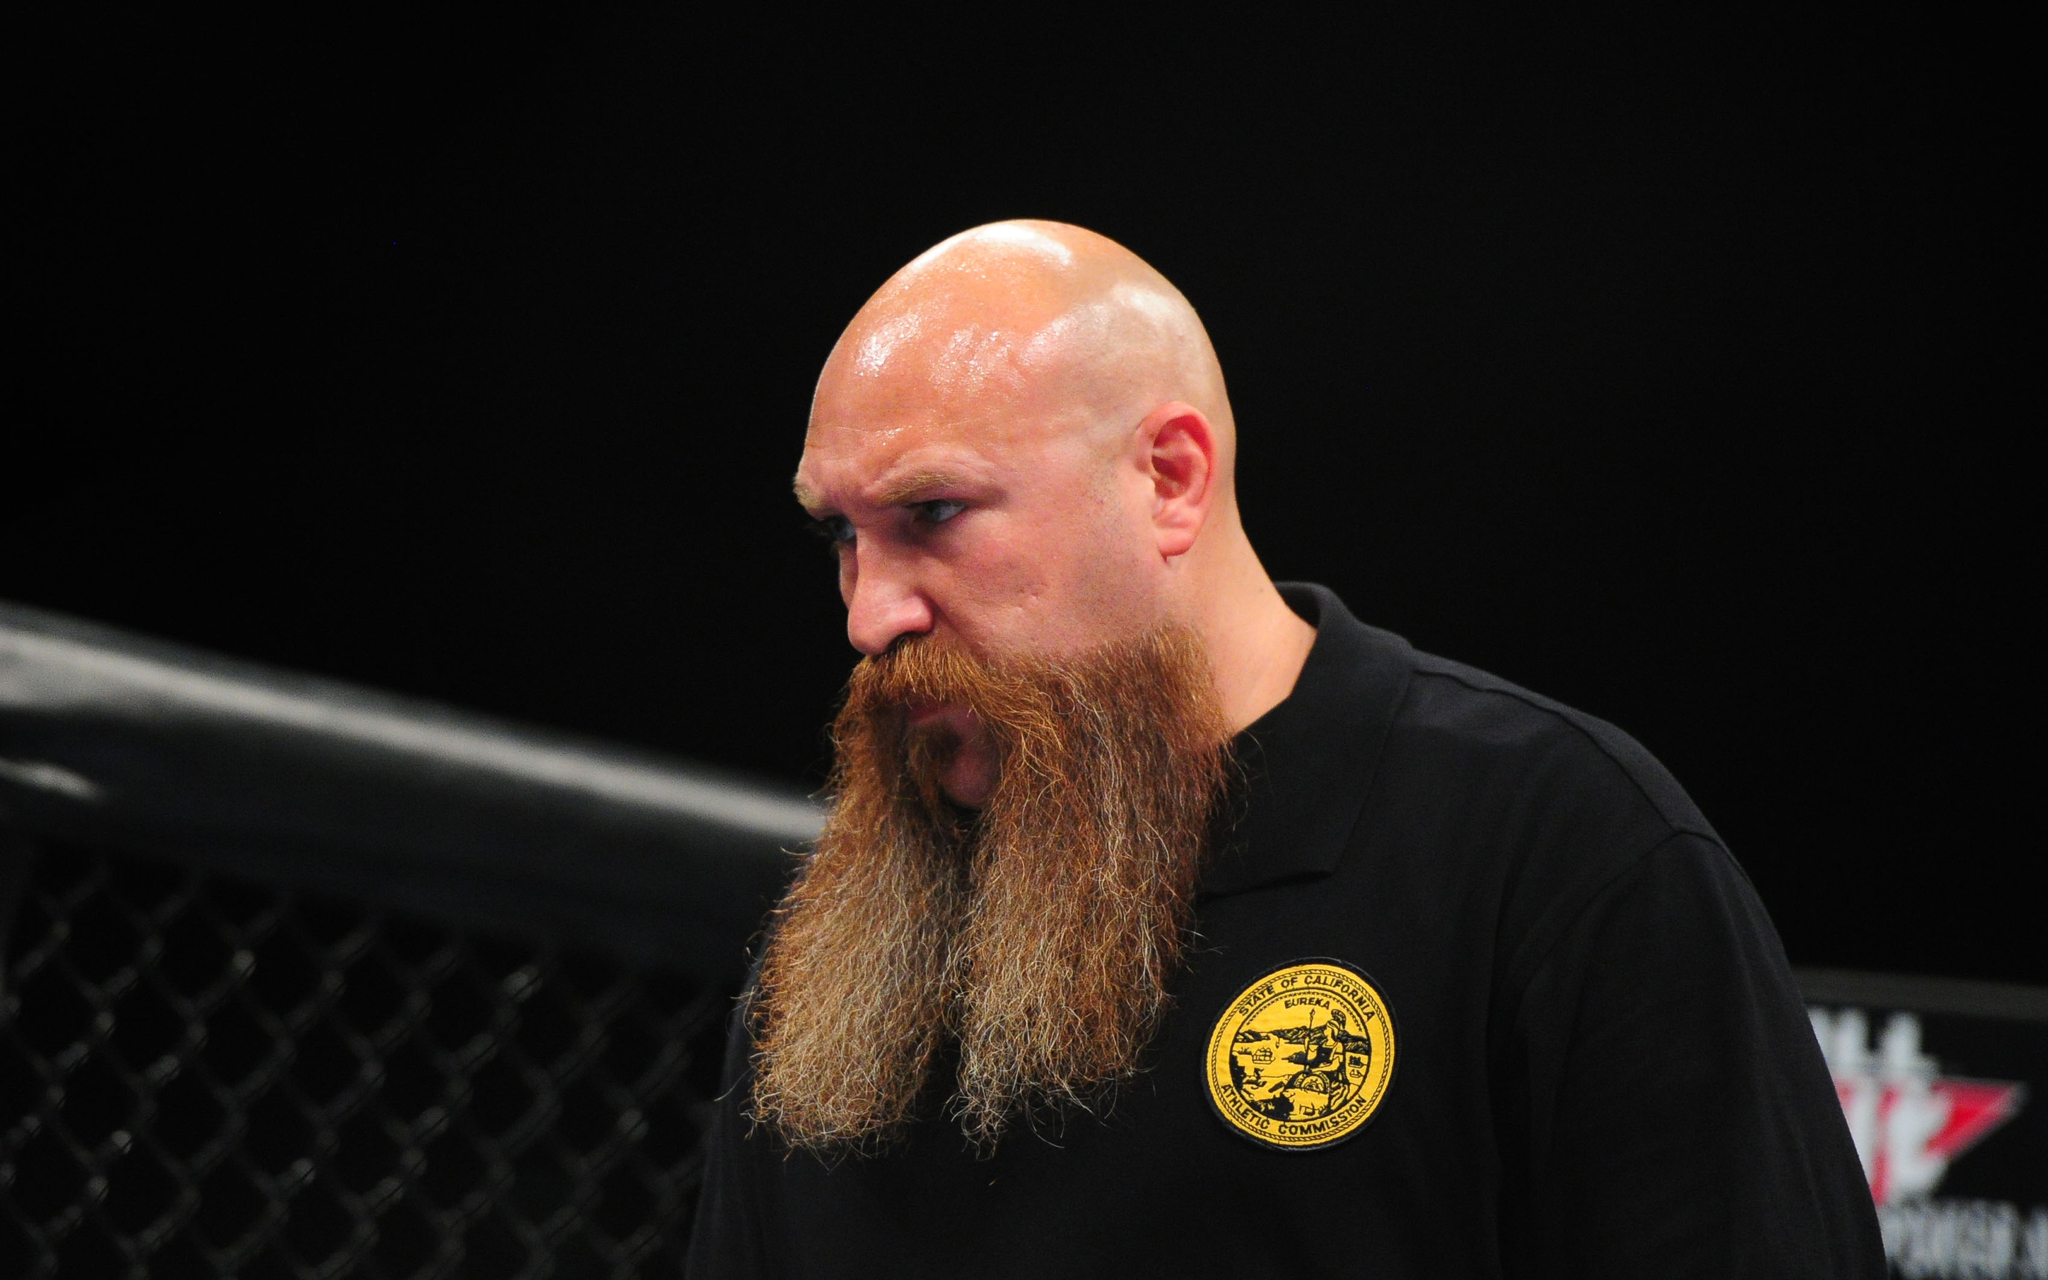 Mike Beltran, MMA Referee